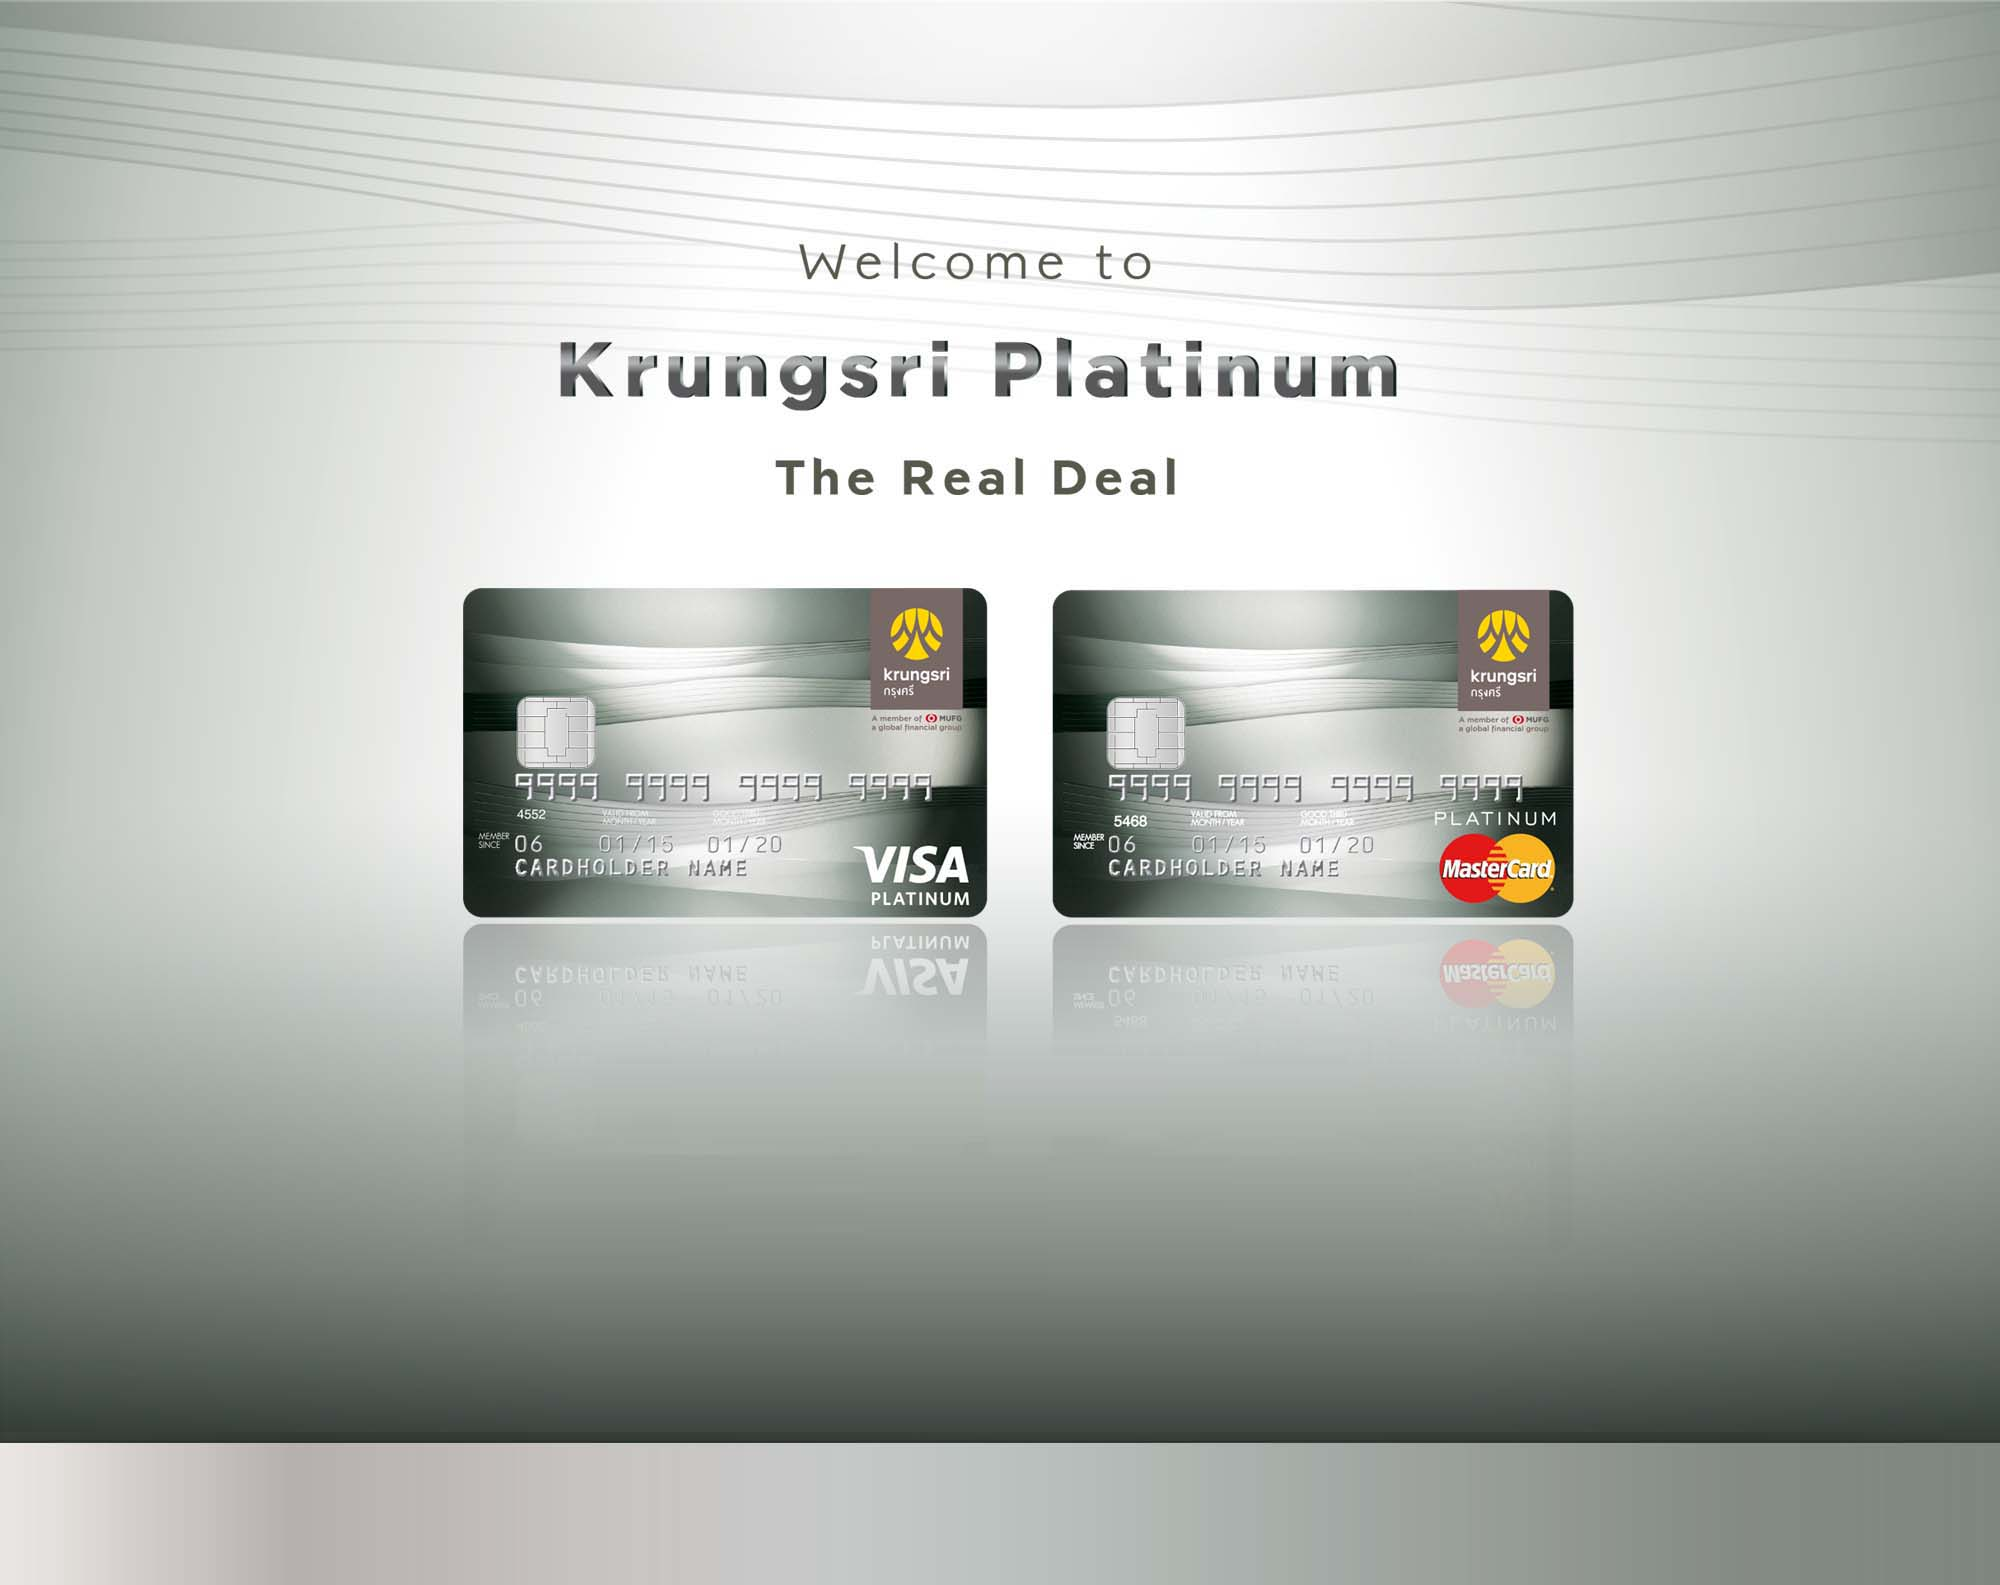 nationwide when paying for fuel via the Krungsri Platinum Credit Card. (Maximum spending of 1,000 baht ...